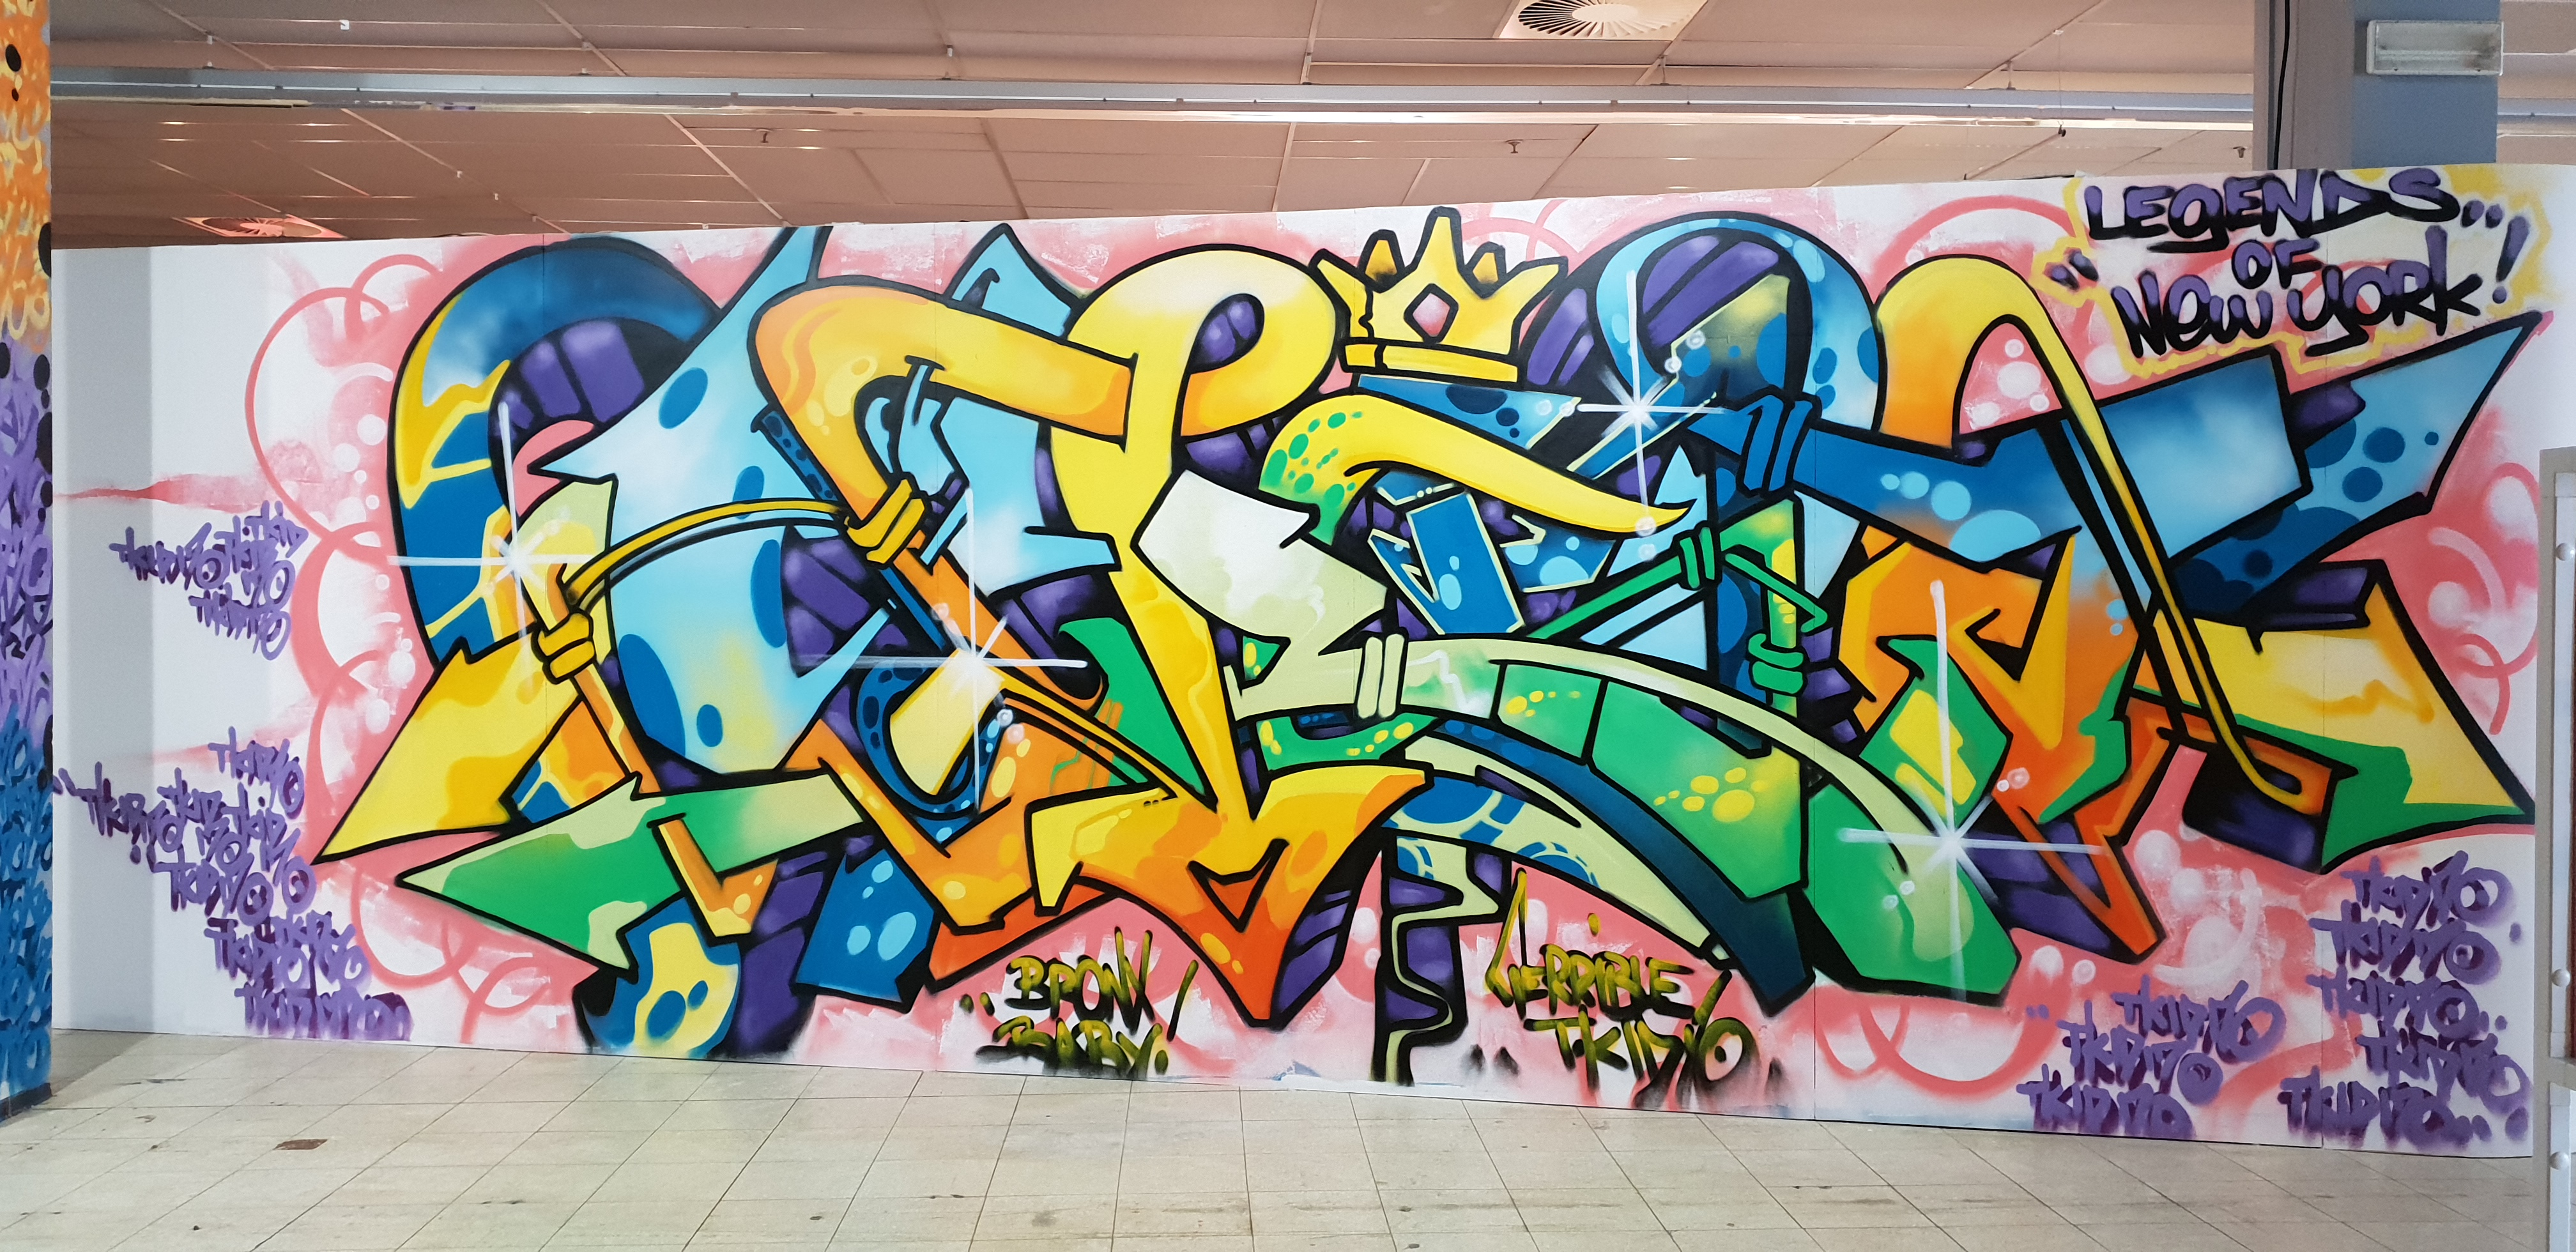 T-KID 170 (Cavero Julius)- Strokar Inside 2018 - ©No Fake In My News